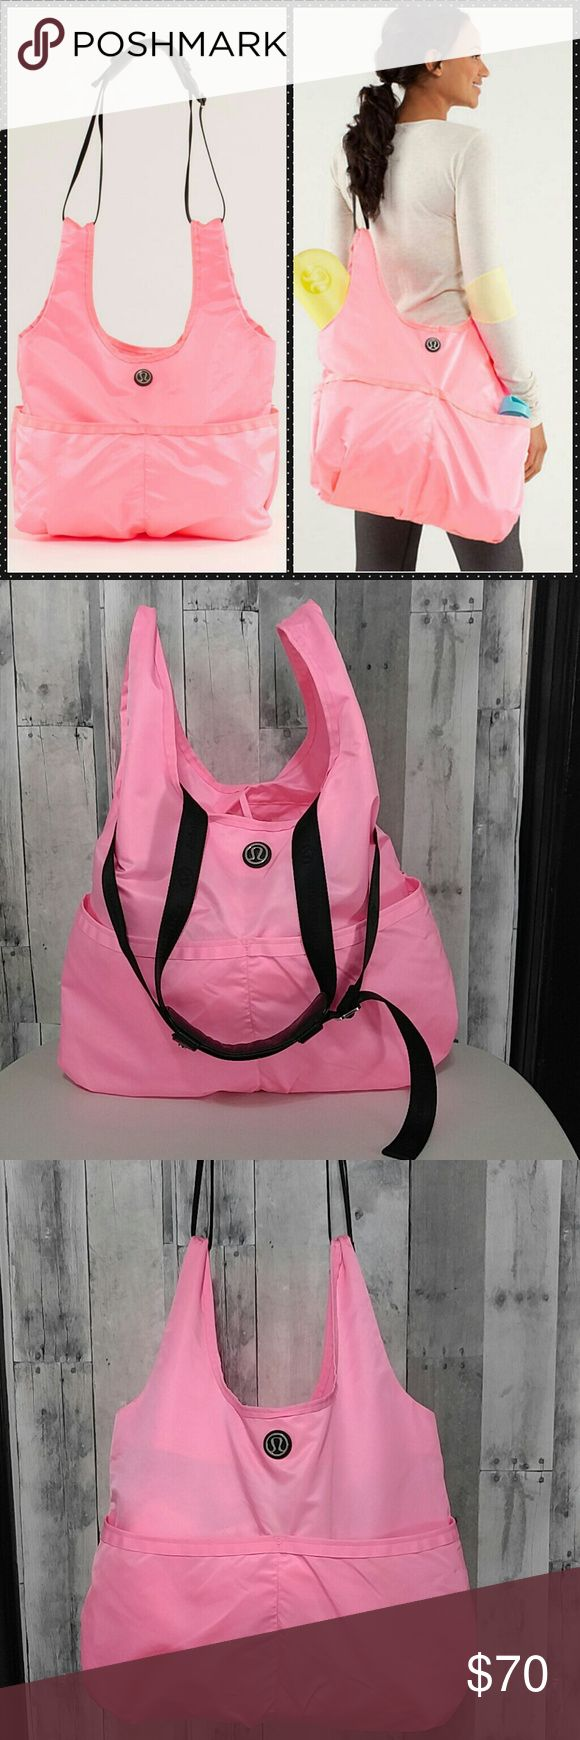 """Pink Lululemon Savasana Yoga Workout Tote Bag Bright pink large lululemon savasana yoga bag! Has adjustable strap with logo on it, silver hardware and padded shoulder strap. Open on top with two ties. Has large flap zip pocket flap inside and two large front and two more back exterior pockets   Like New condition inside and out  20"""" wide  24"""" tall including the straps  Nylon with ribbon trim  Easy to store and light to carry   No trades please Bags Totes"""